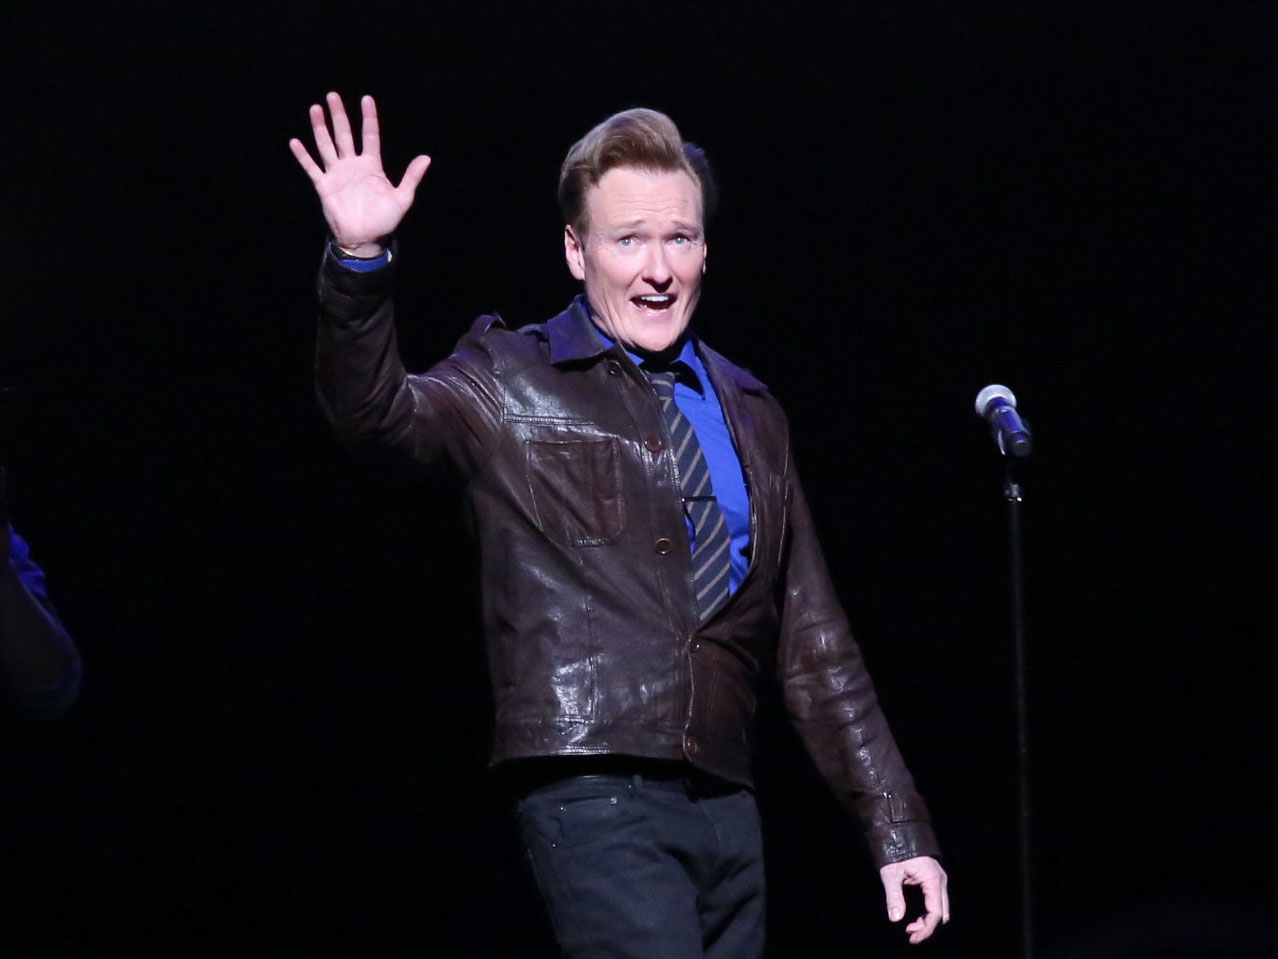 Watch Conan O'Brien Tour the Sam Adams Brewery and Create His Own 'Conan Brew'